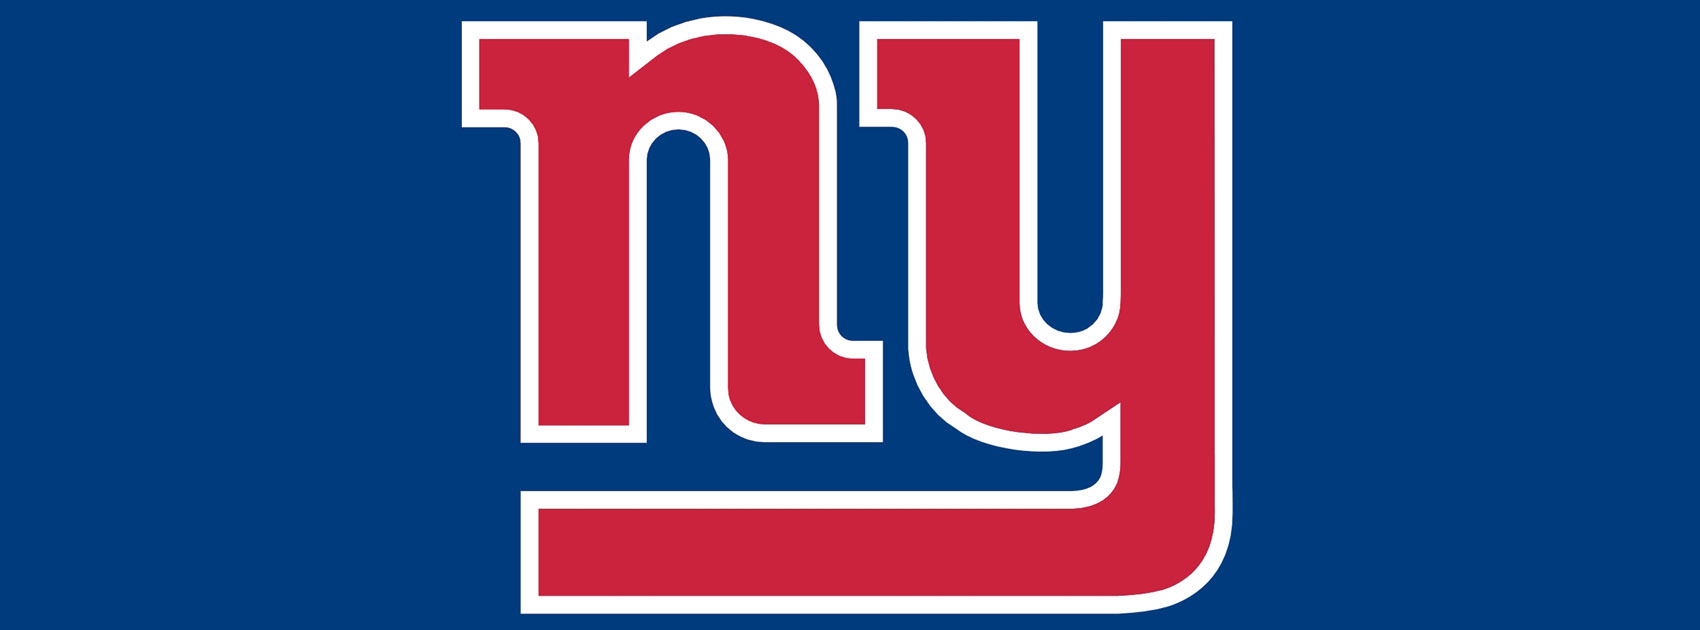 1700x630 New York Giants Ny Red Facebook Timeline Cover Digital Citizen